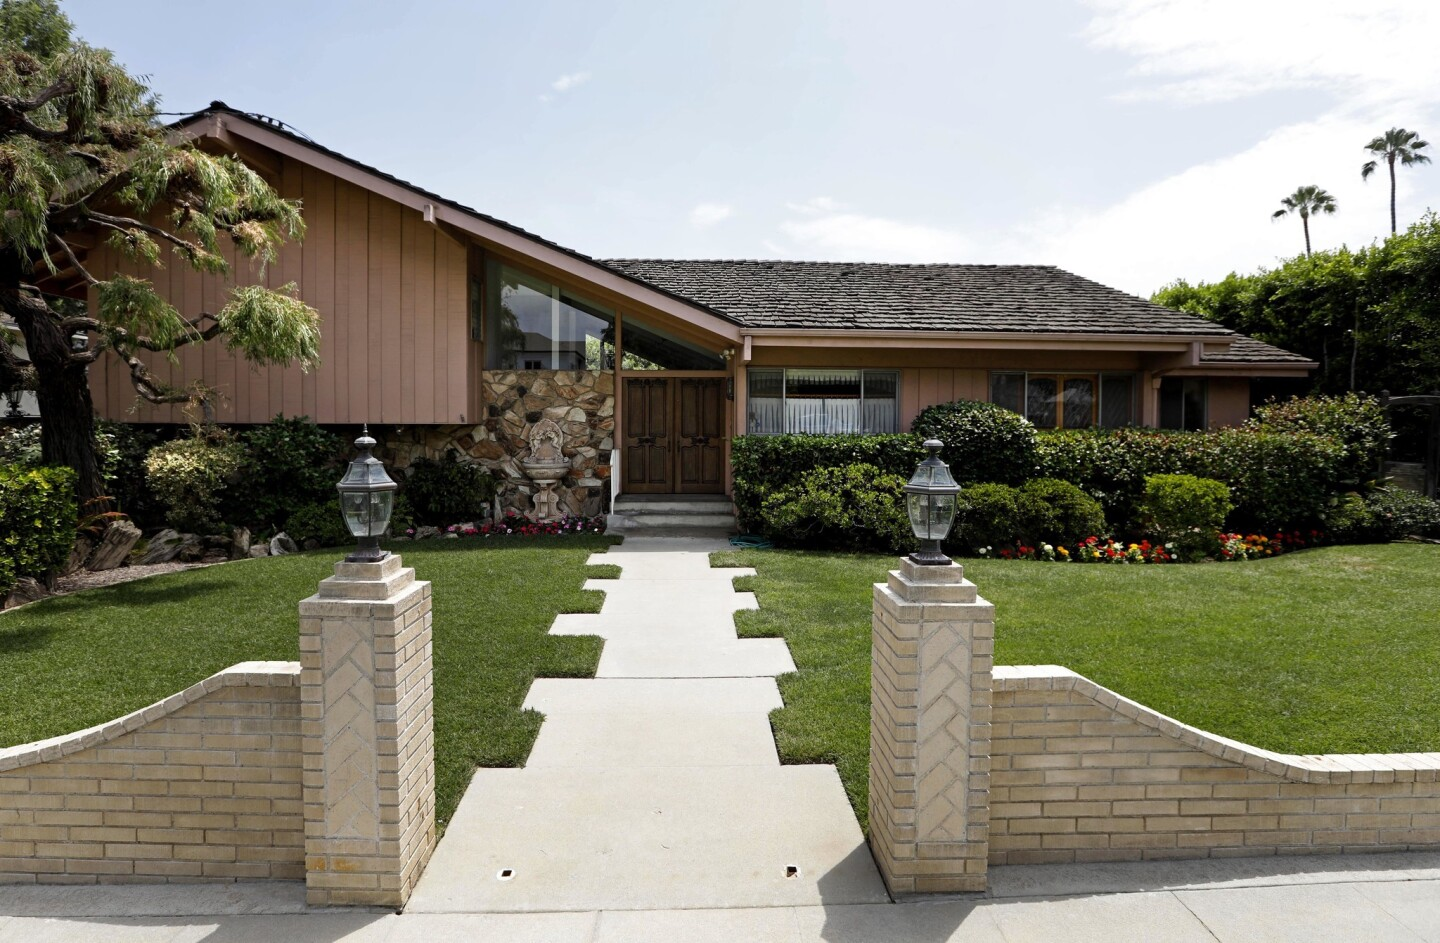 NORTH HOLLYWOOD, CA – JULY 18, 2018 - The Brady Bunch house at 11222 Dilling Street is on the market for $1.8 million in North Hollywood on July 18, 2018. The Brady Bunch house is a traditional-style residence in the Colfax Meadows neighborhood and was used for all outdoor representations of the television family home. (Genaro Molina/Los Angeles Times)